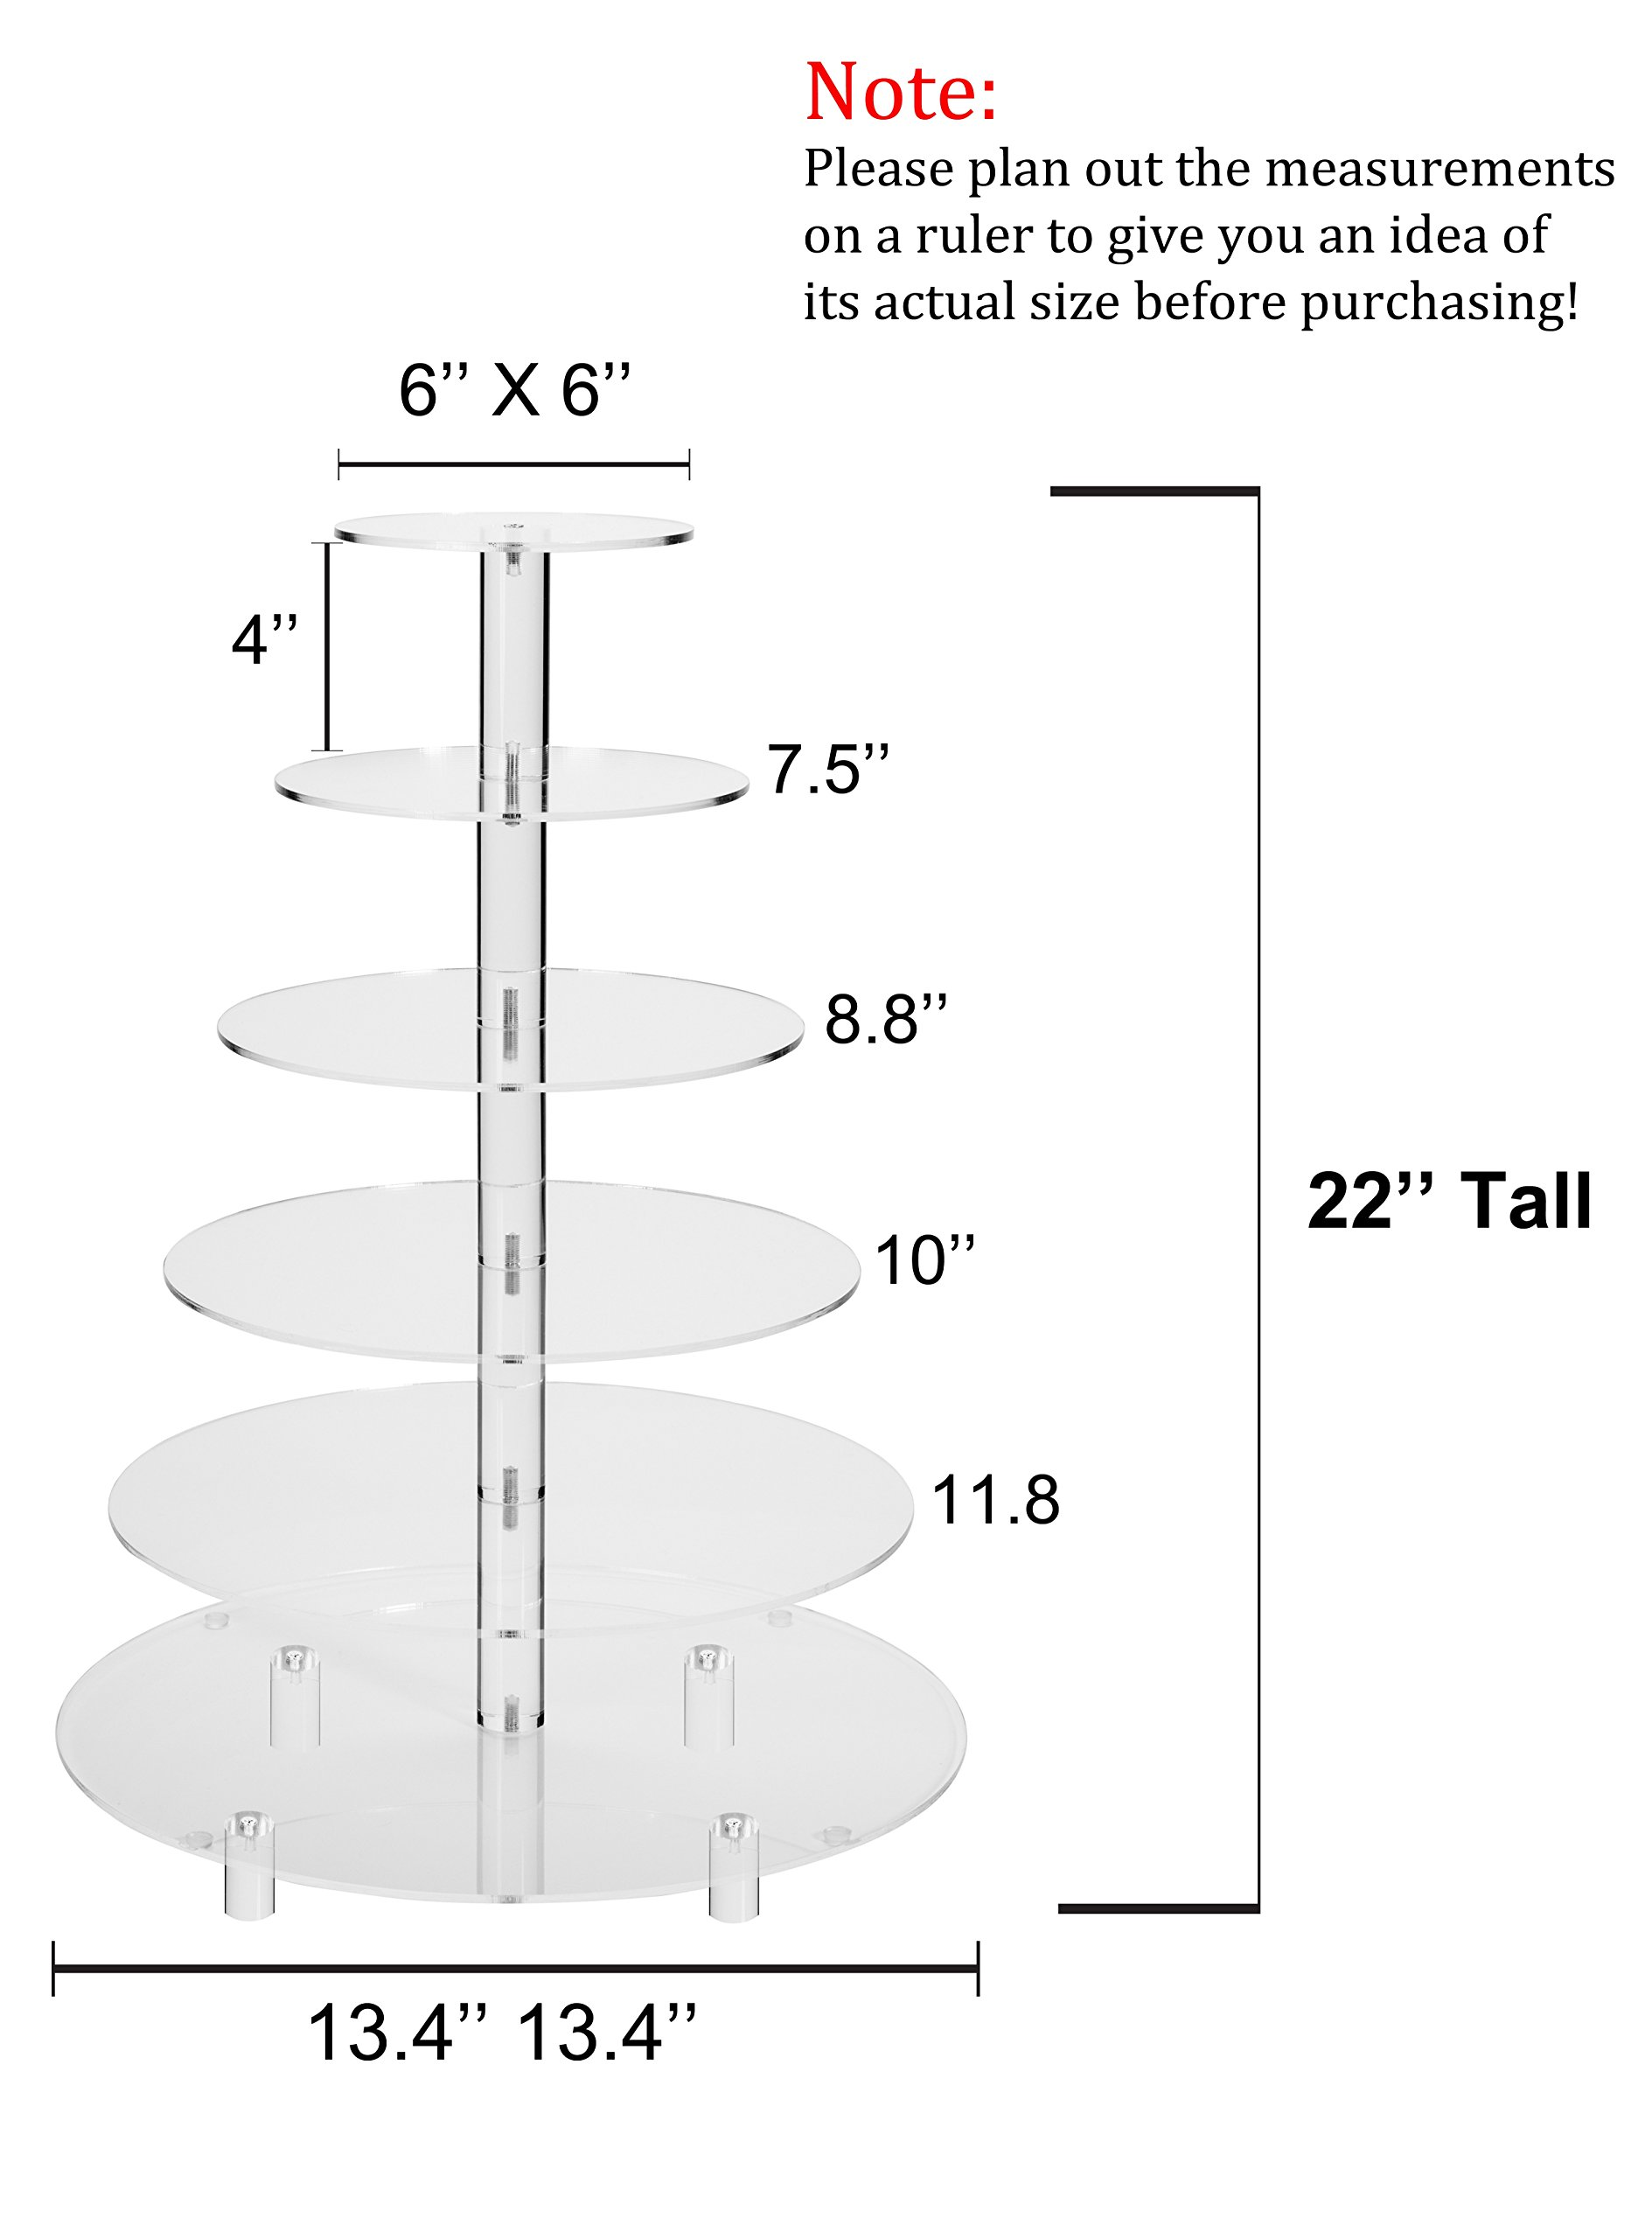 Jusalpha 6 Tier Round Acrylic Cupcake Stand-cake stand-dessert stand, cupcake Tower 6RFs (6 Tier With Base) (6RF-small) by Jusalpha (Image #2)